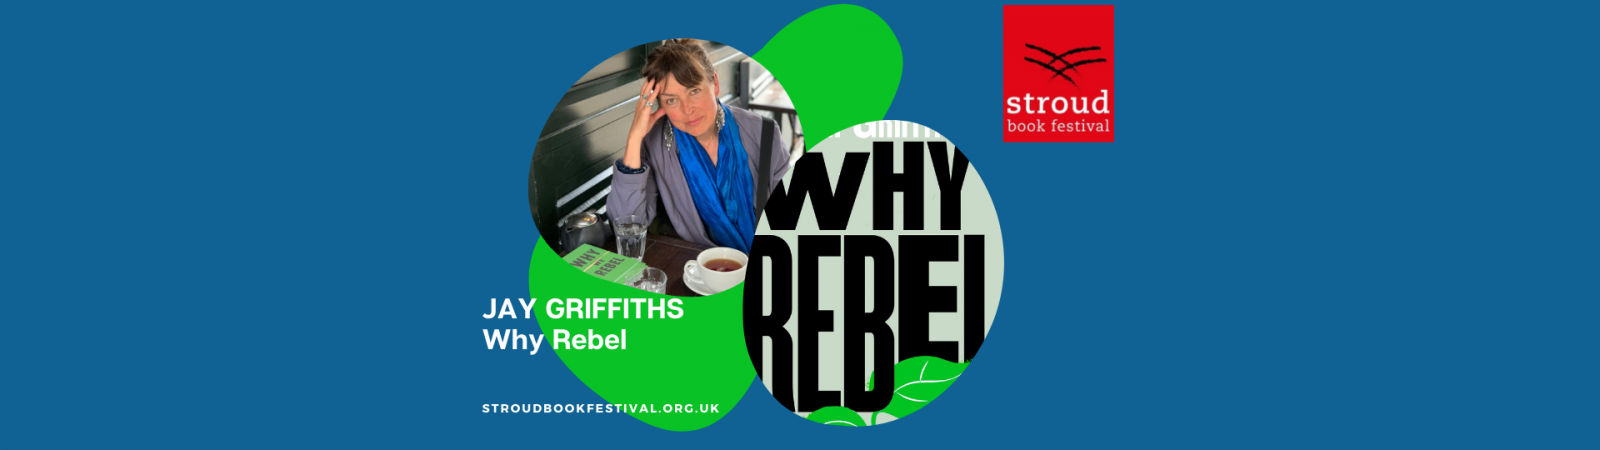 Why Rebel, Jay Griffiths